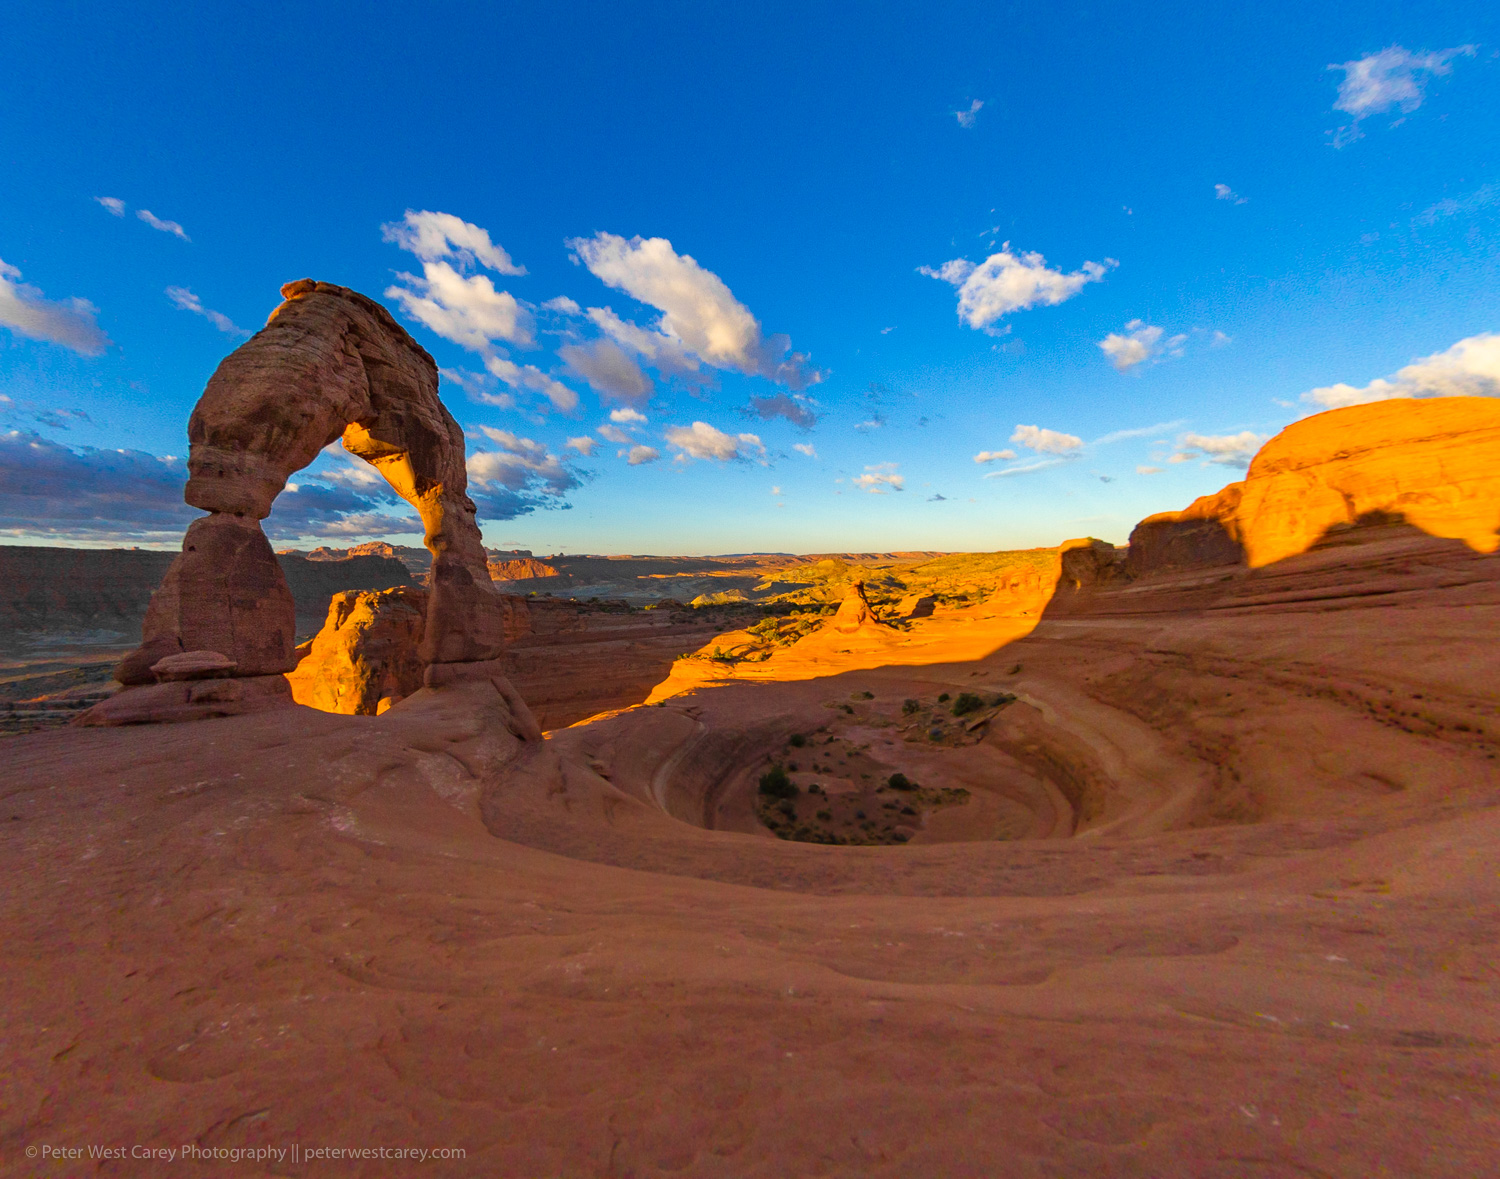 https://i0.wp.com/digital-photography-school.com/wp-content/uploads/2018/11/Photography-Hot-Spots-PWC-Delicate-Arch-7851.jpg?resize=1500%2C1179&ssl=1